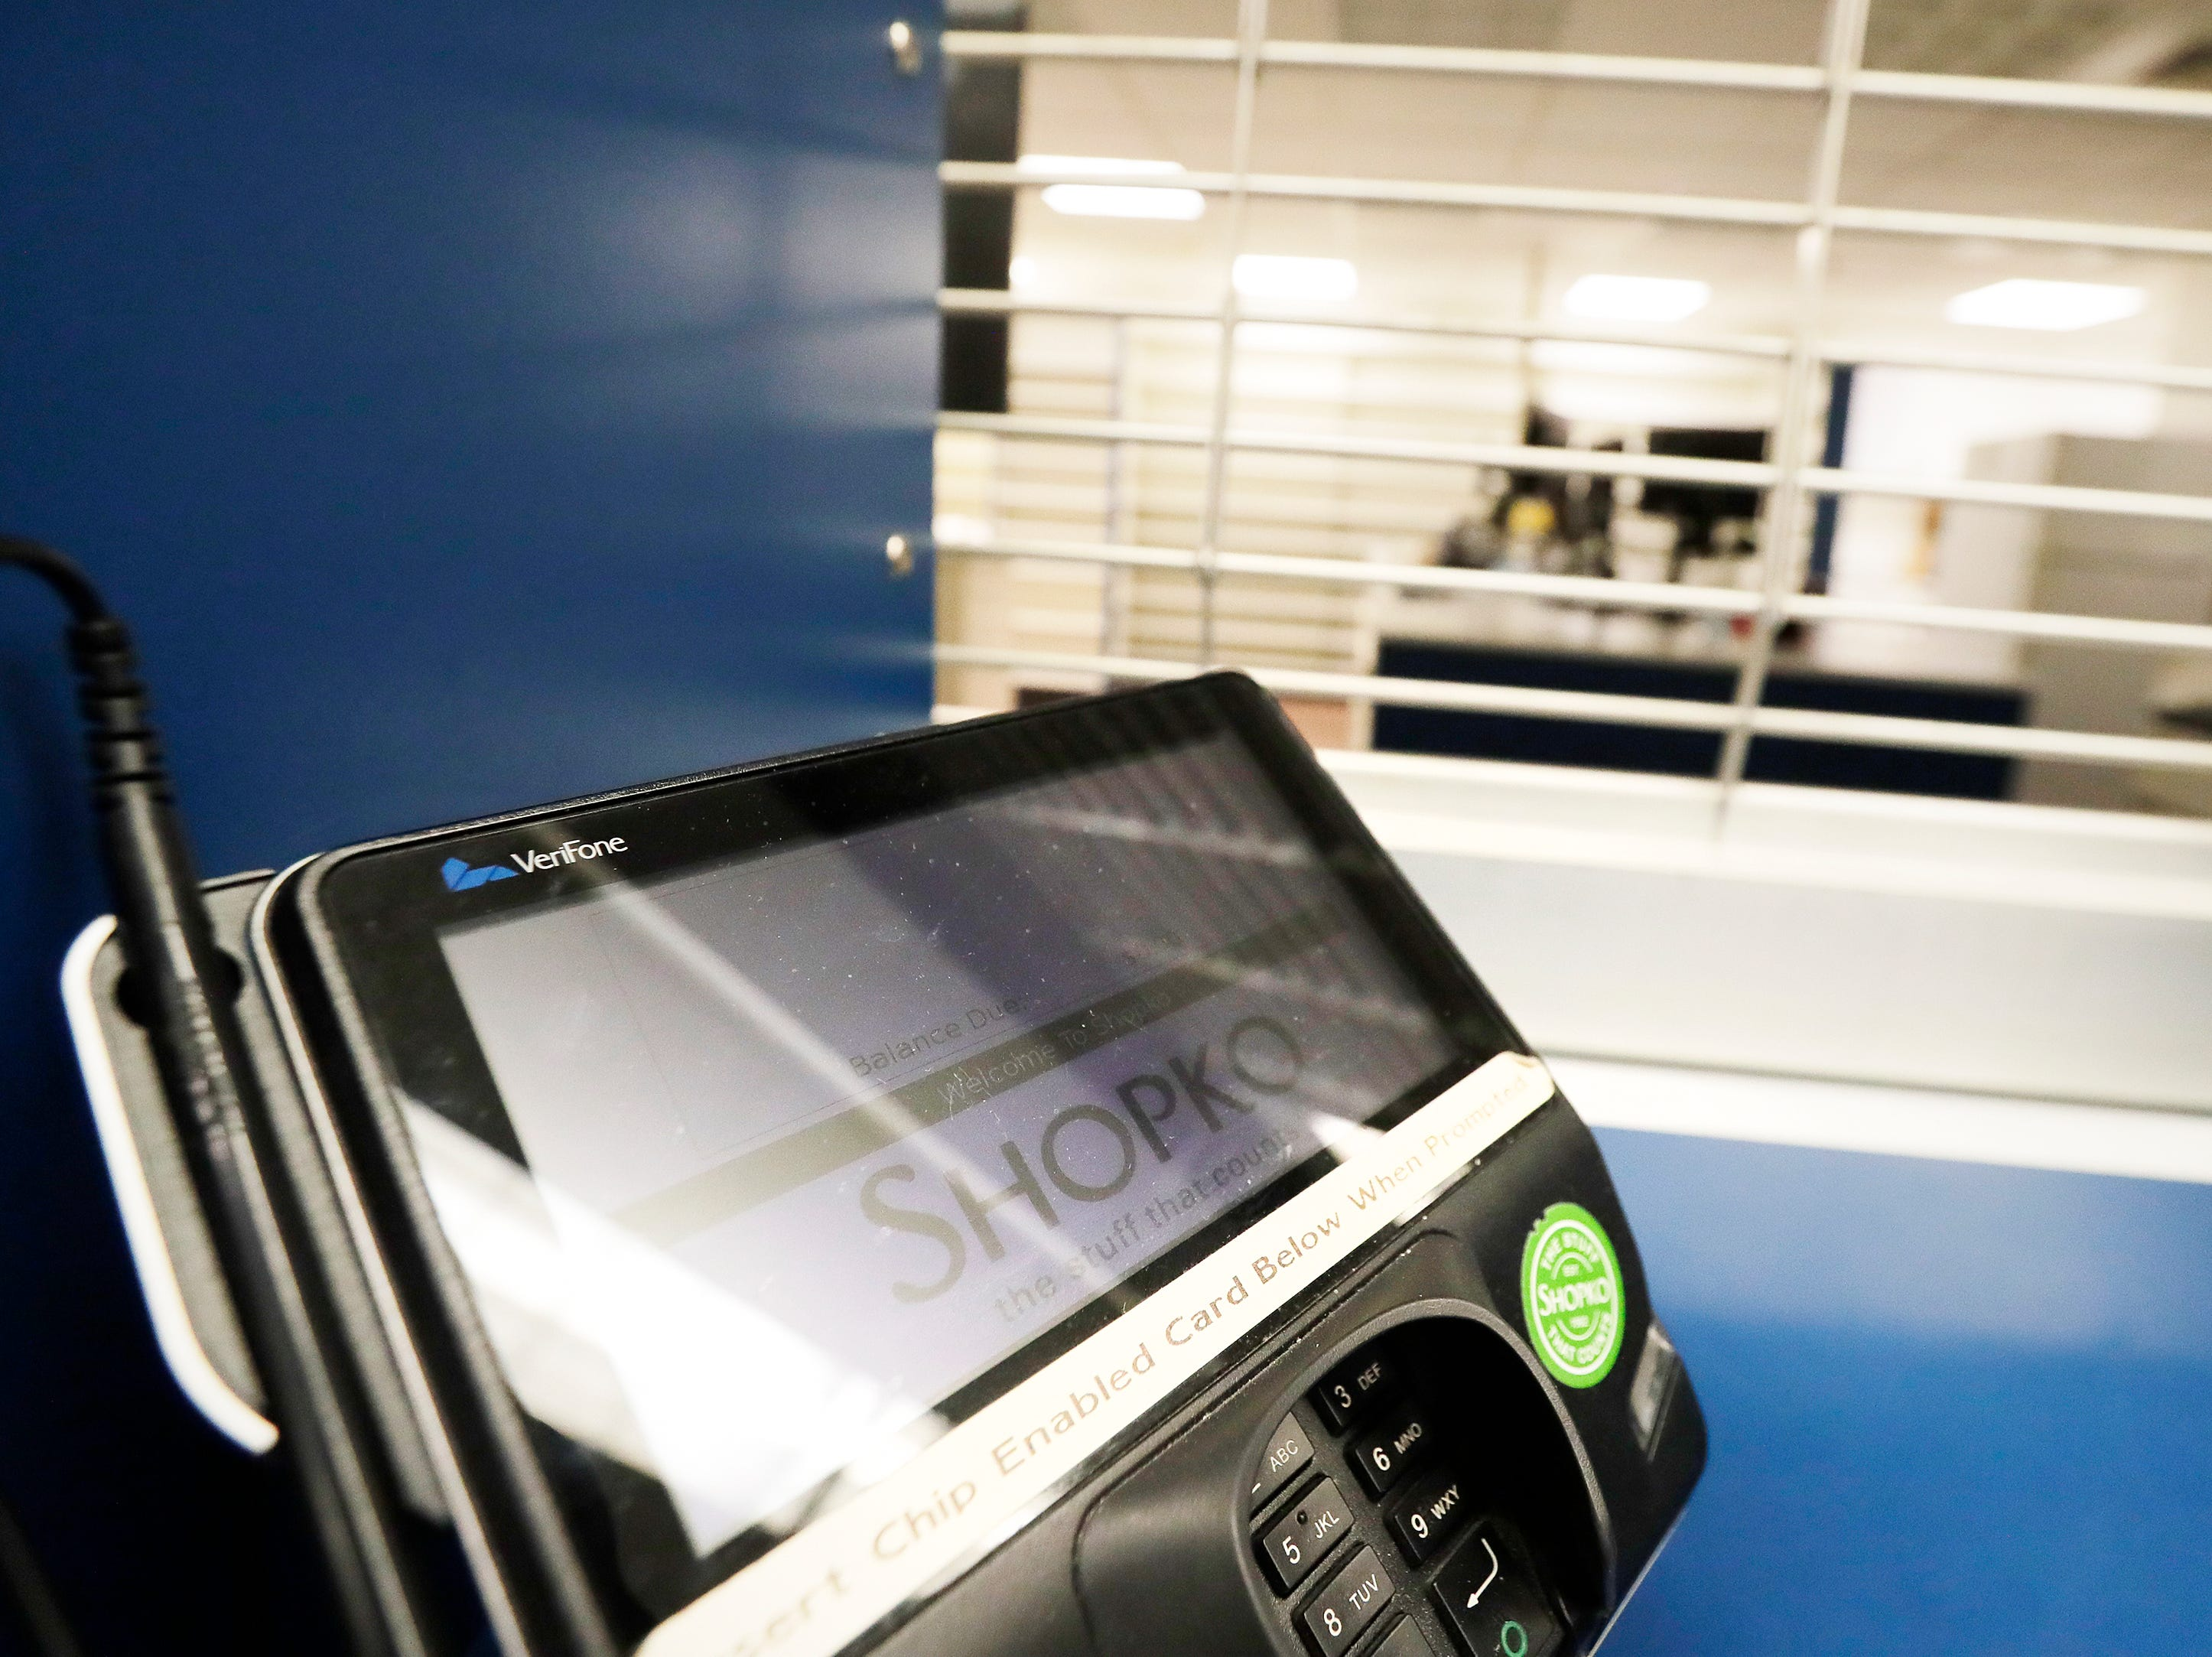 A credit card machine is shown at the closed pharmacy in the original Shopko store on Wednesday, January 16, 2019 in Green Bay, Wis. Shopko filed for chapter 11 bankruptcy on Wednesday and announced it will close 105 stores, including the company's original store on Military Ave in Green Bay.